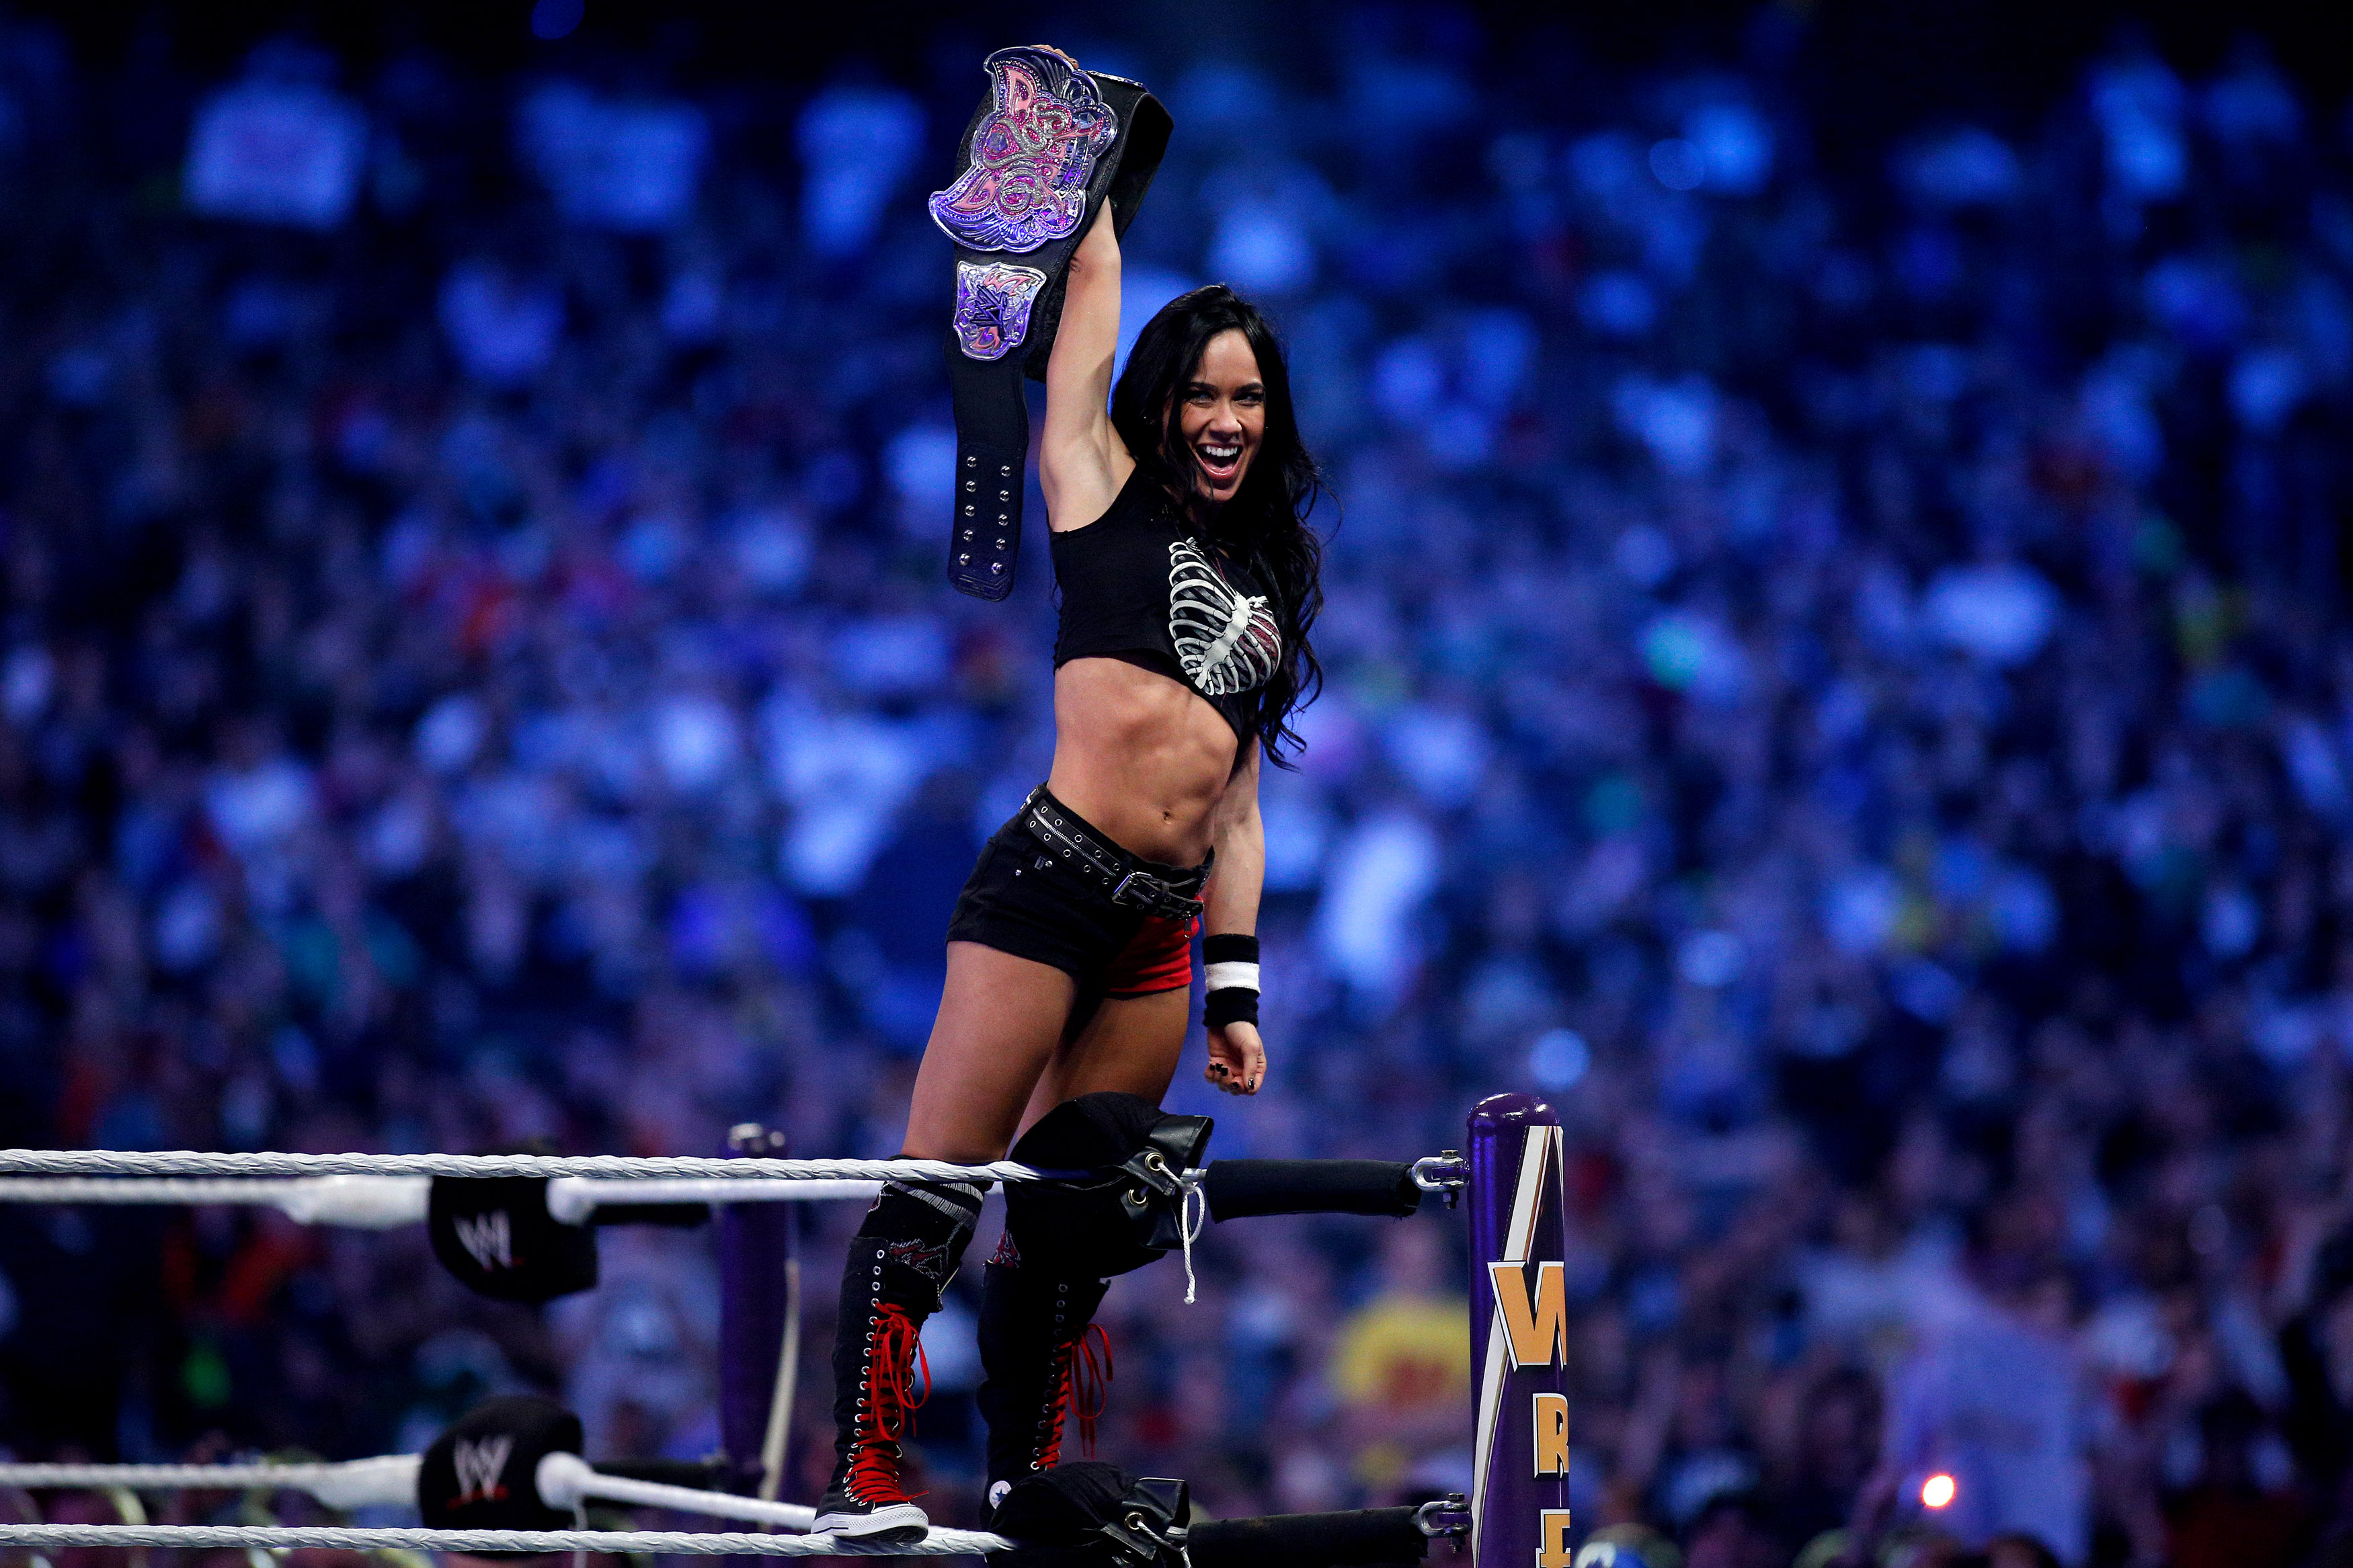 AJ Lee celebrates after winning the Divas Championship Invitational during Wrestlemania XXX at the Mercedes-Benz Super Dome in New Orleans on Sunday, April 6, 2014. (Jonathan Bachman—AP)